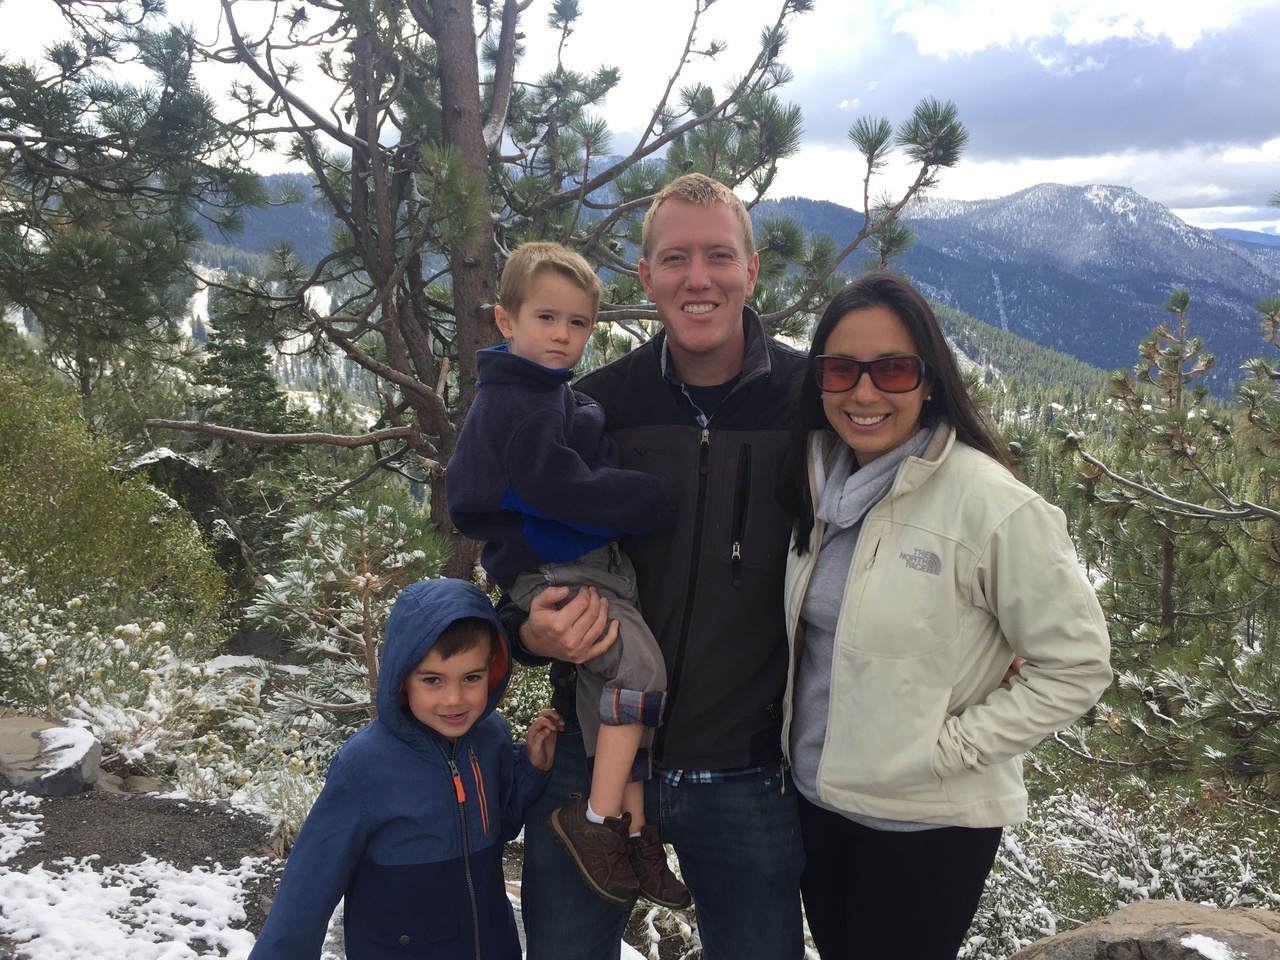 Family photo of Glenn Chamberlain with wife Mari and two young sons with snowy Lake Tahoe region in the background